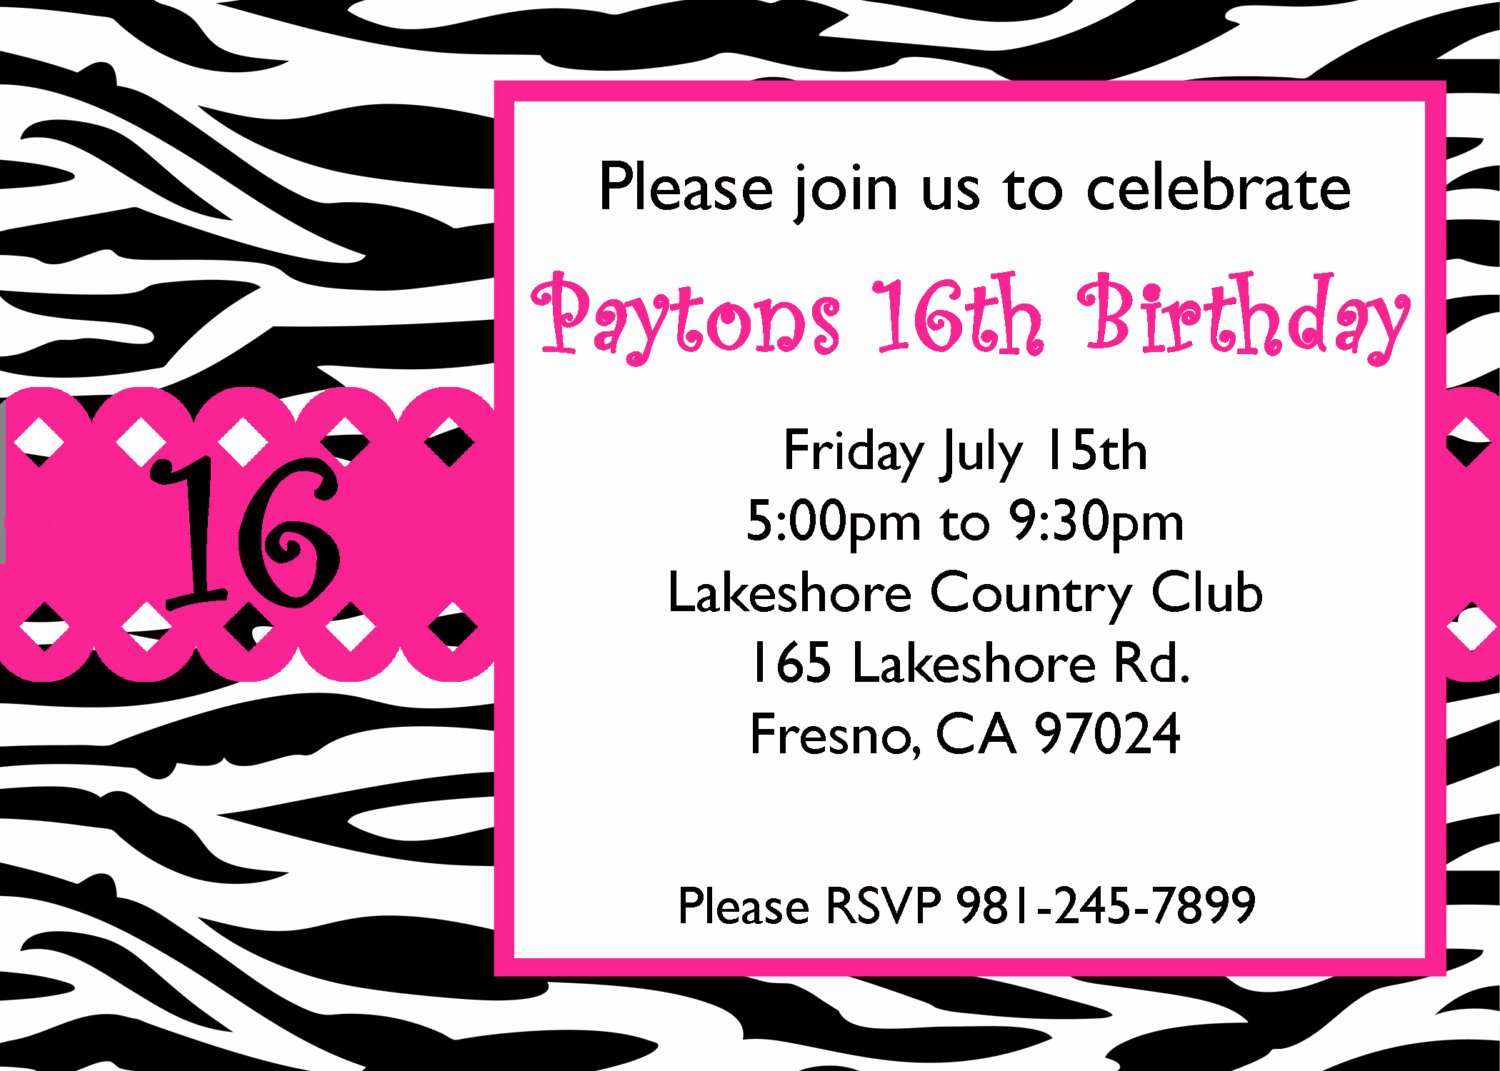 Sweet Sixteen Invitation Template Beautiful Free Sweet 16 Birthday Invitations Templates